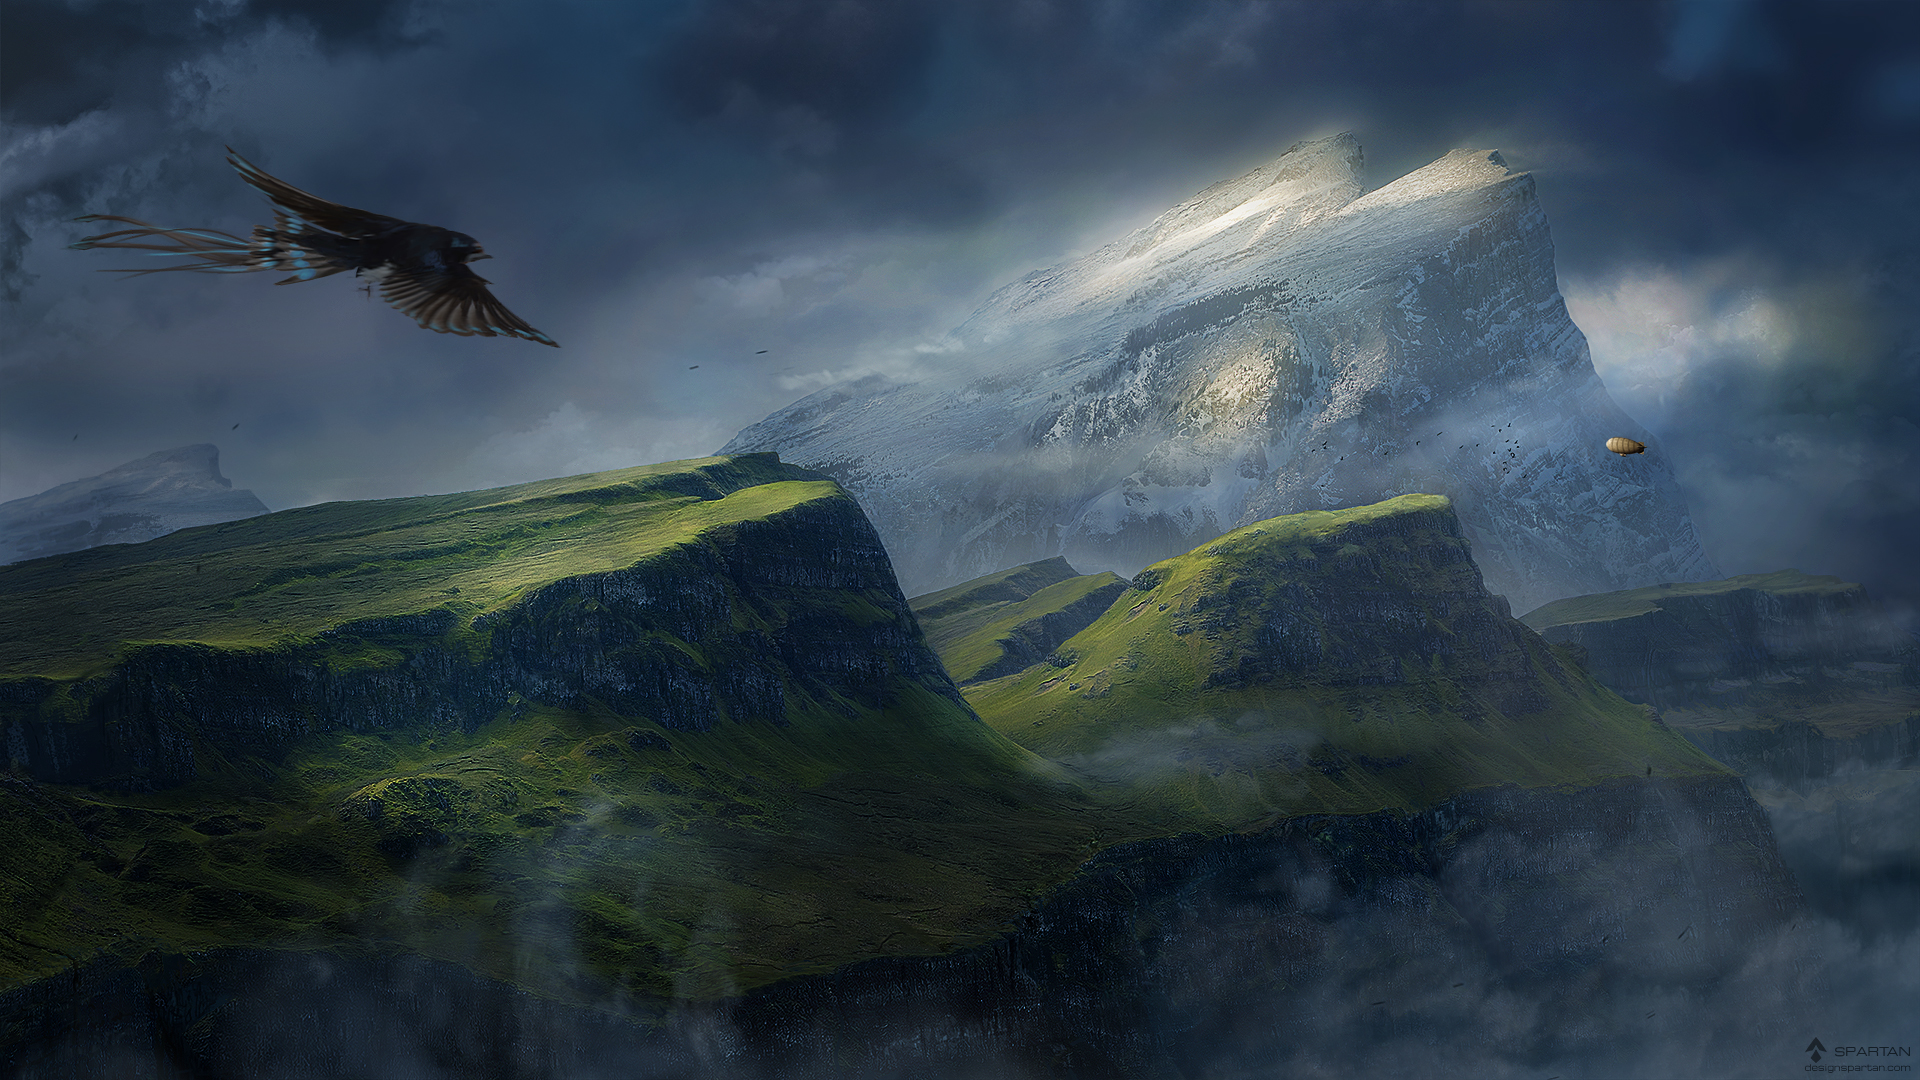 Desktopography 2012 matte painting